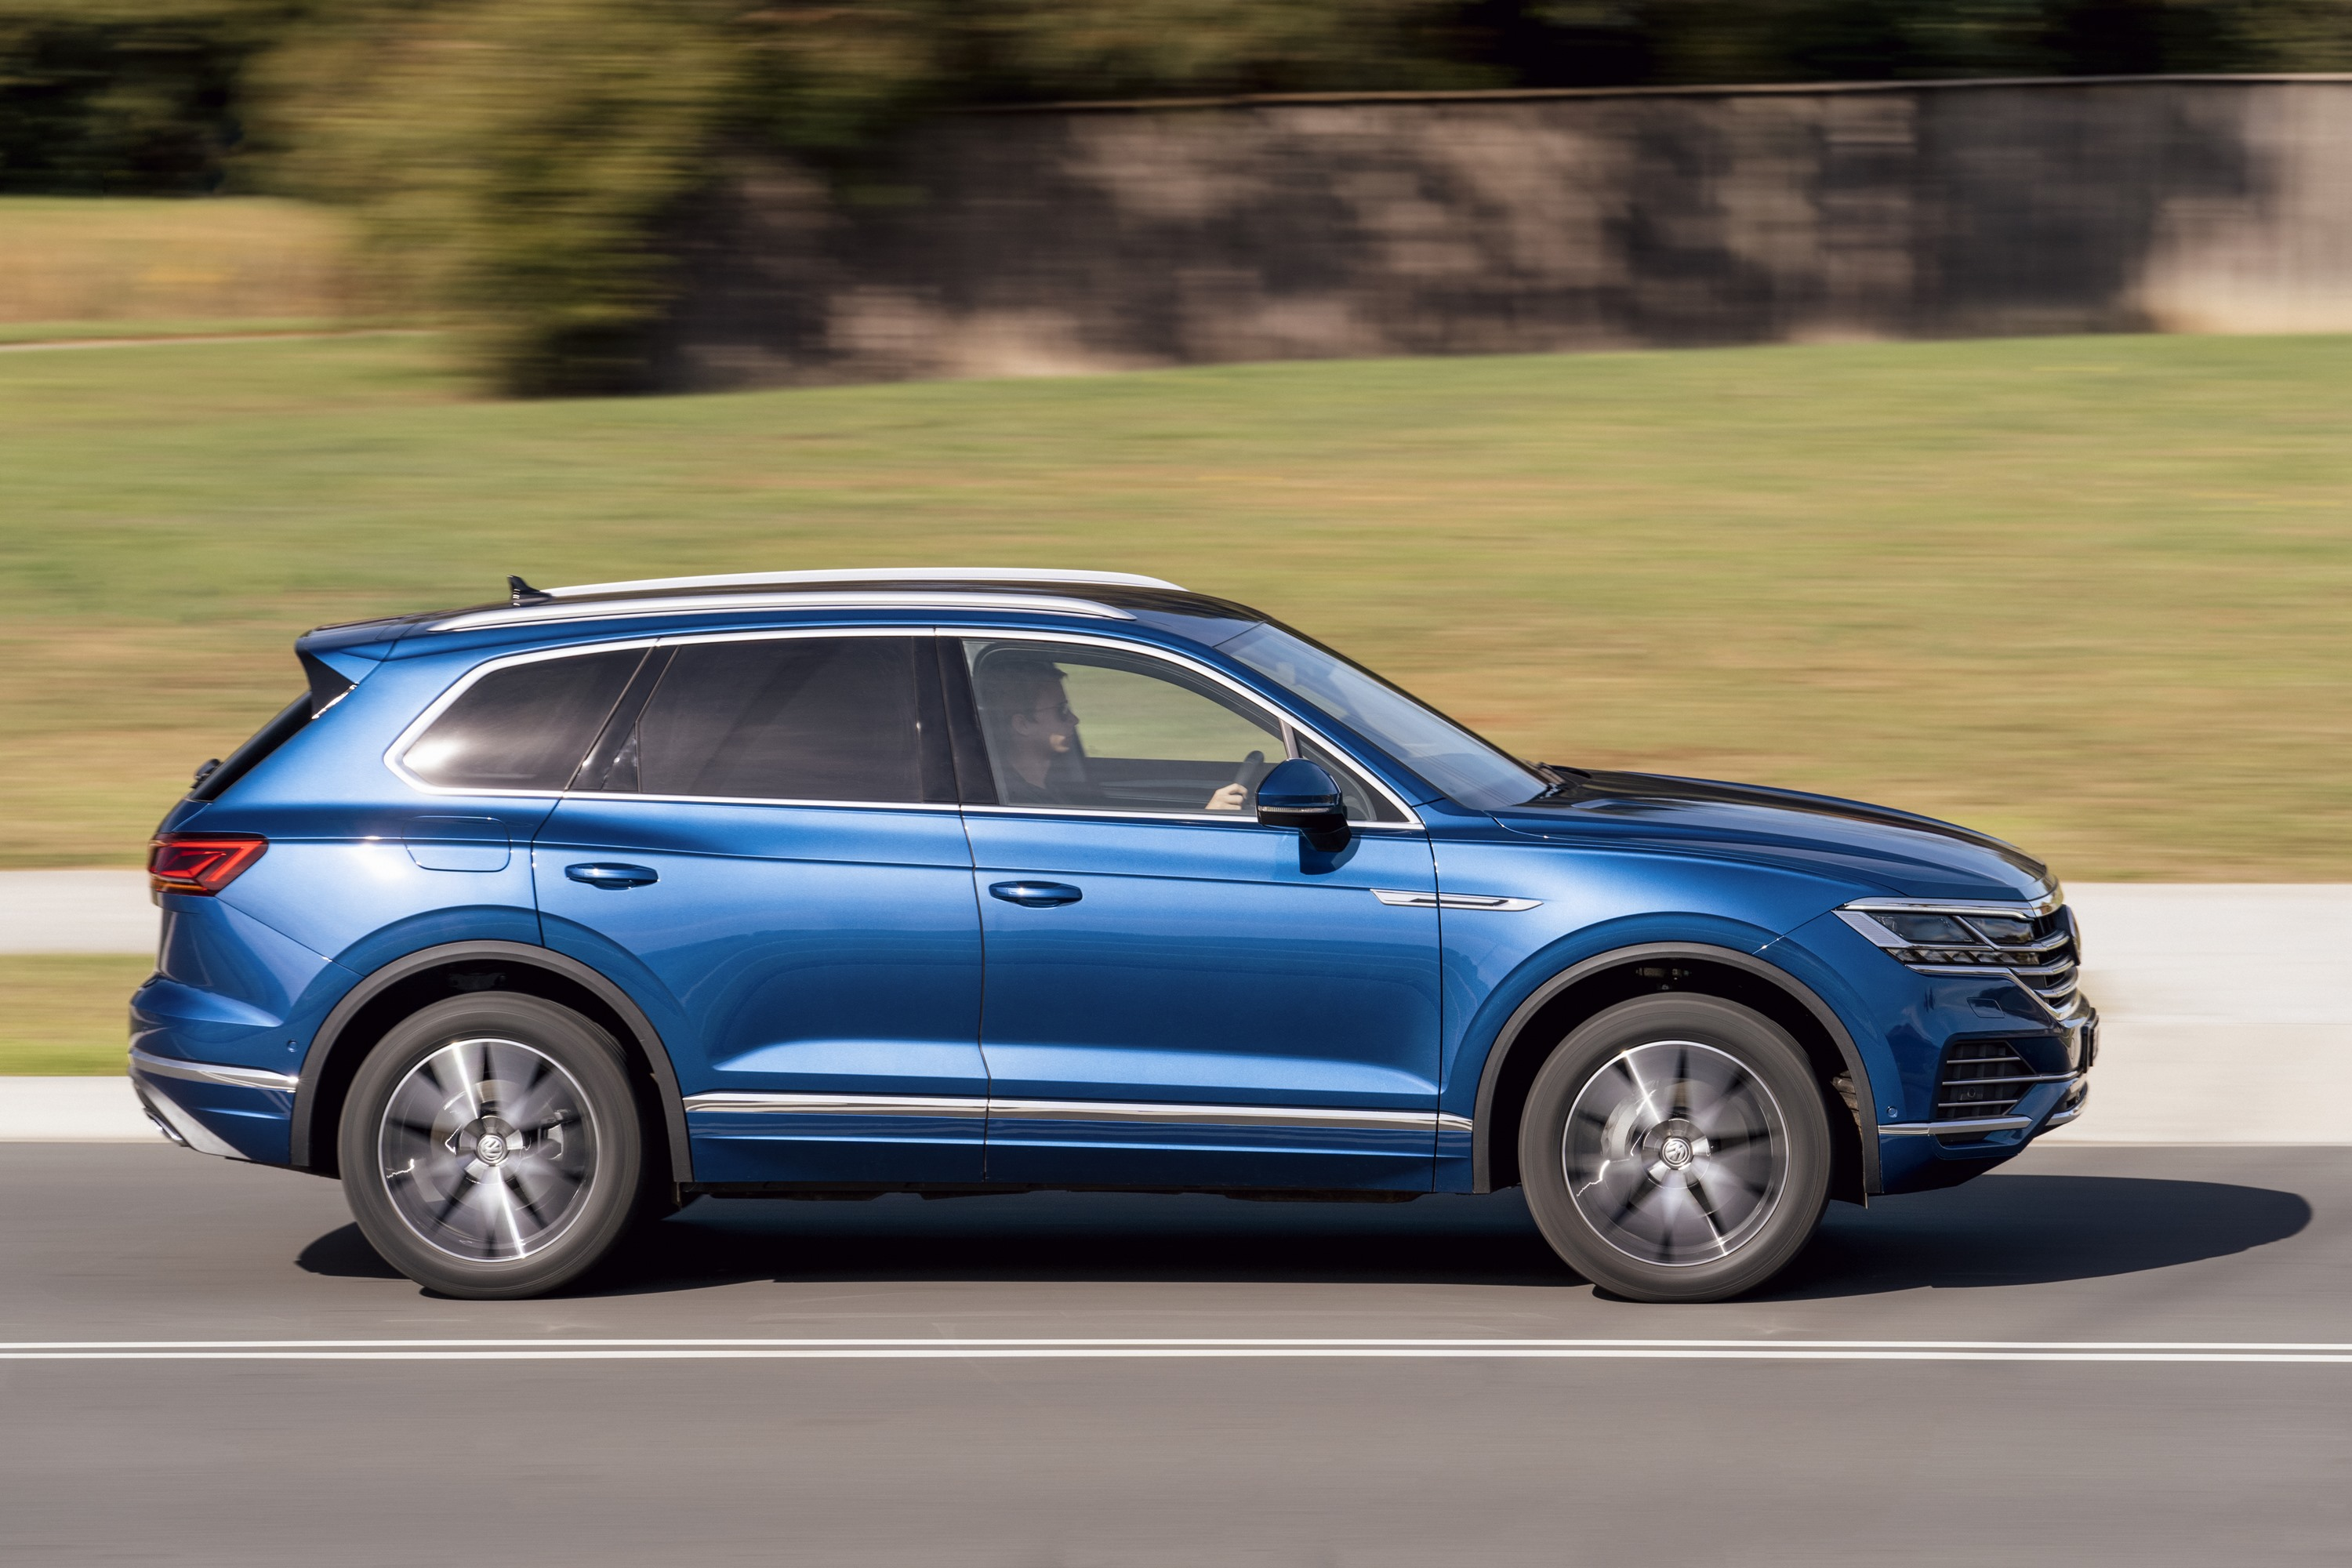 2019 VW Touareg Launch Edition 6 side view